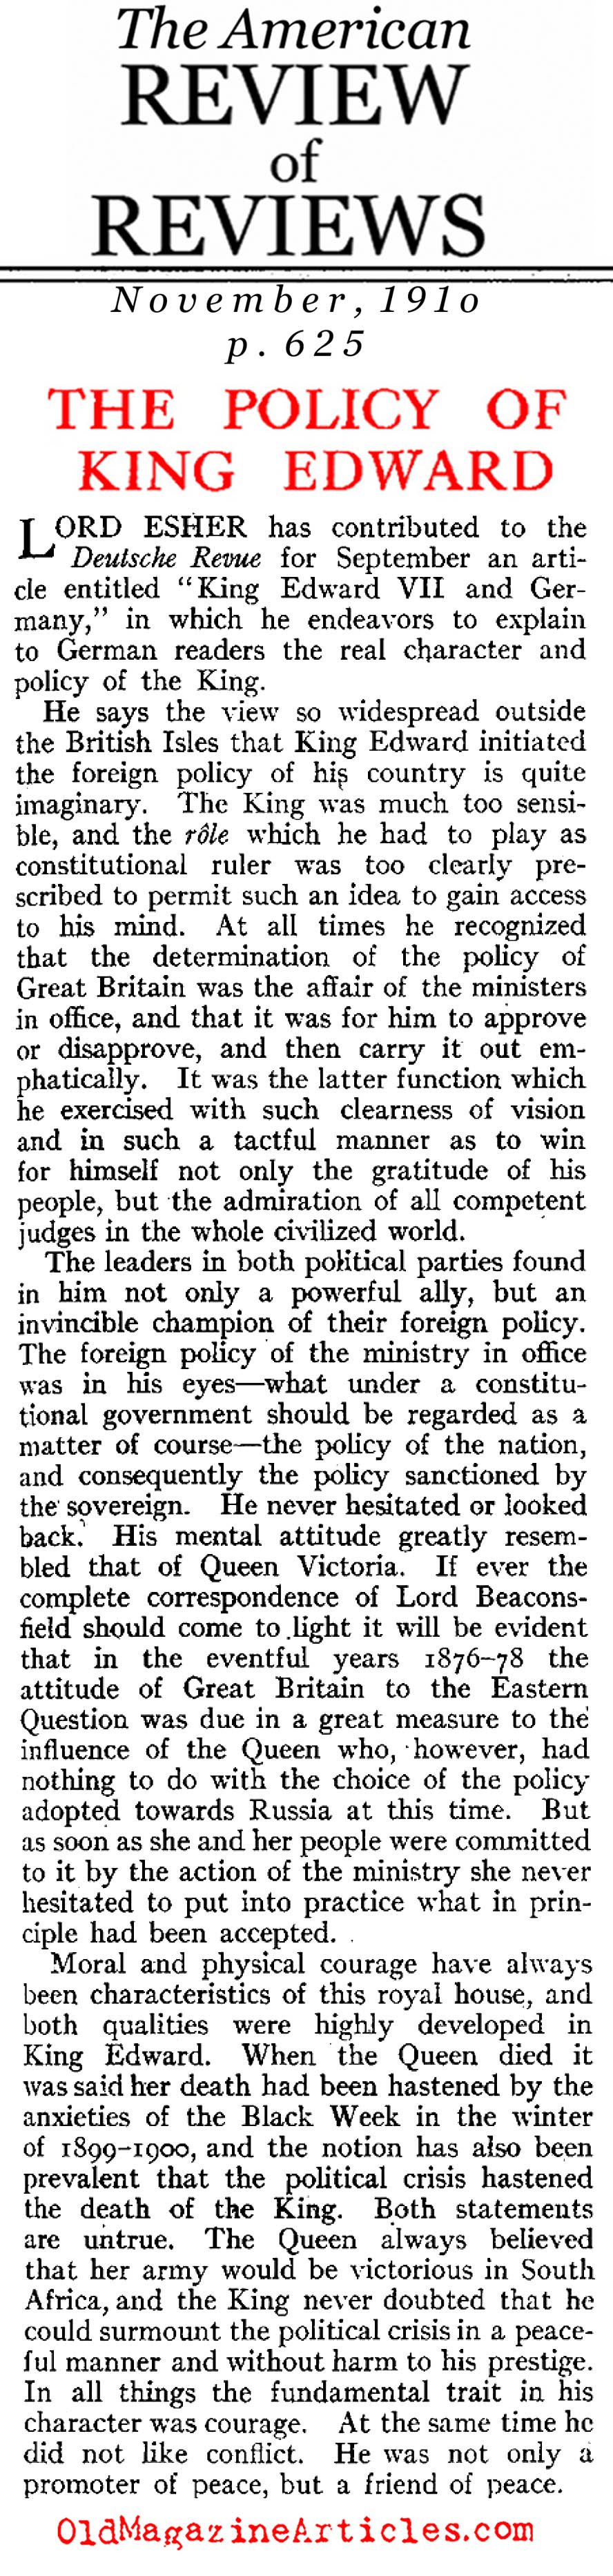 The Policies of King Edward VII (Review of Reviews, 1910)